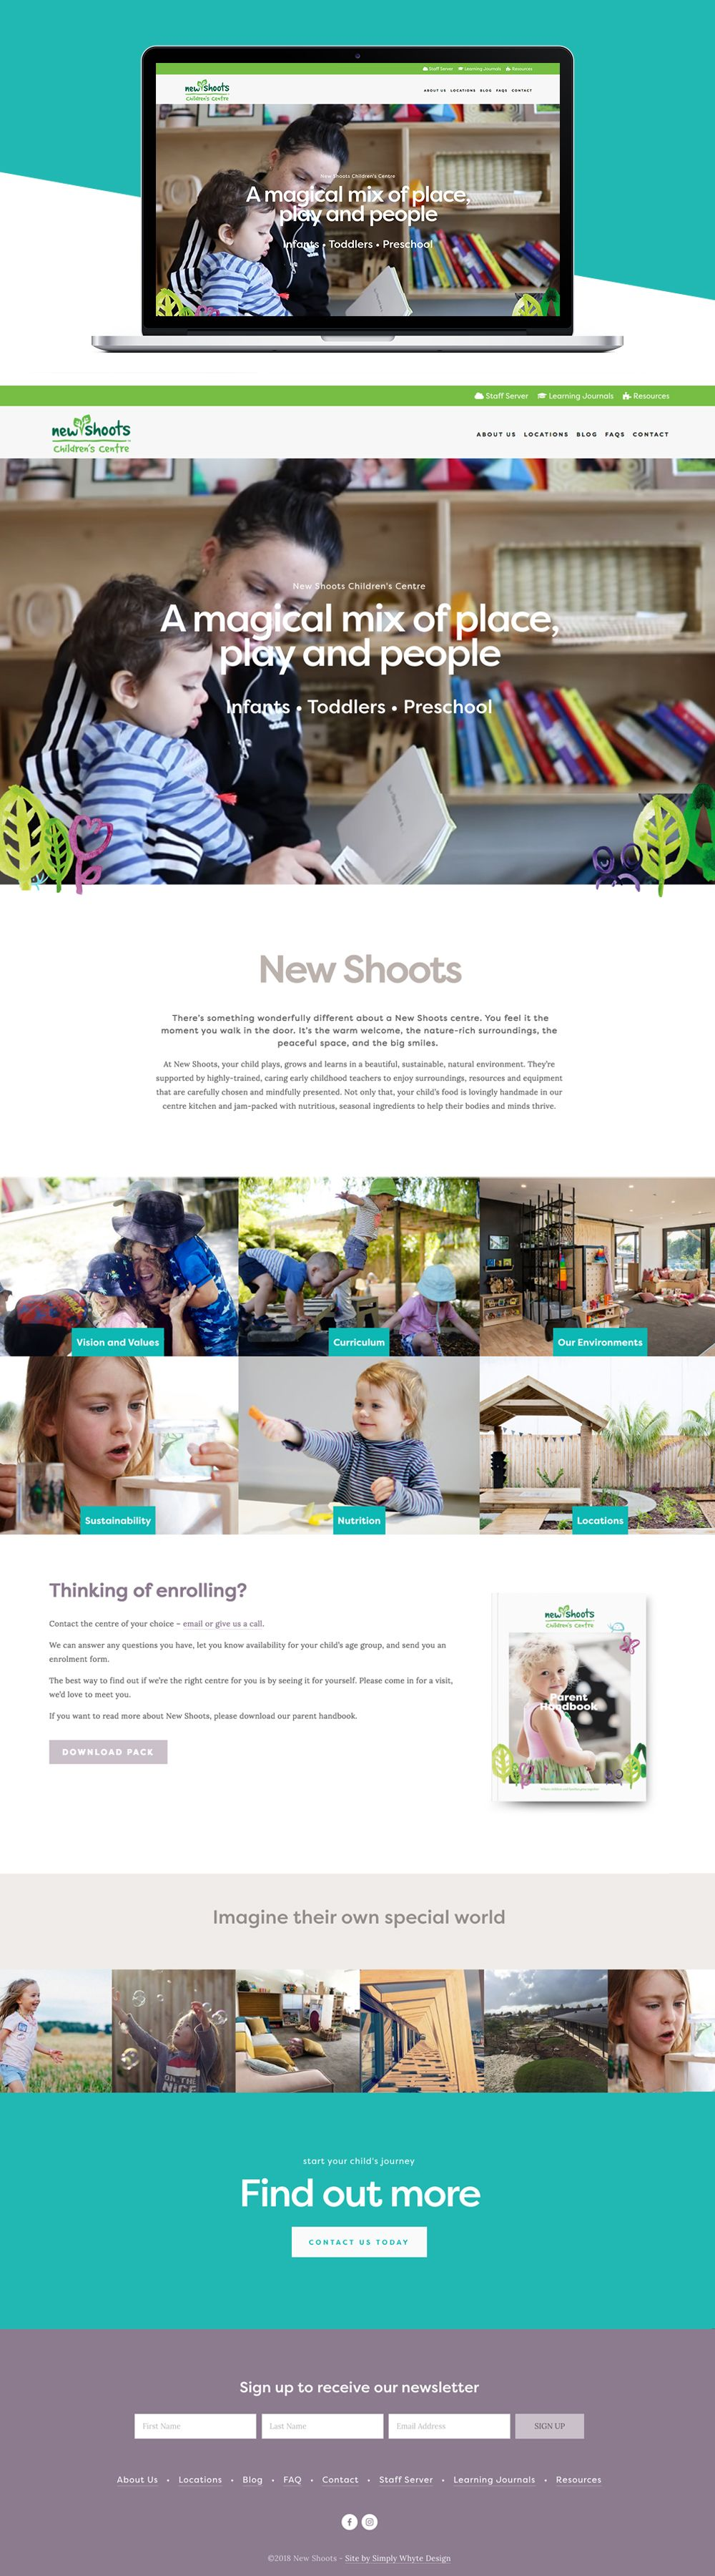 Newshoots Squarespace Website by Simply Whyte Design